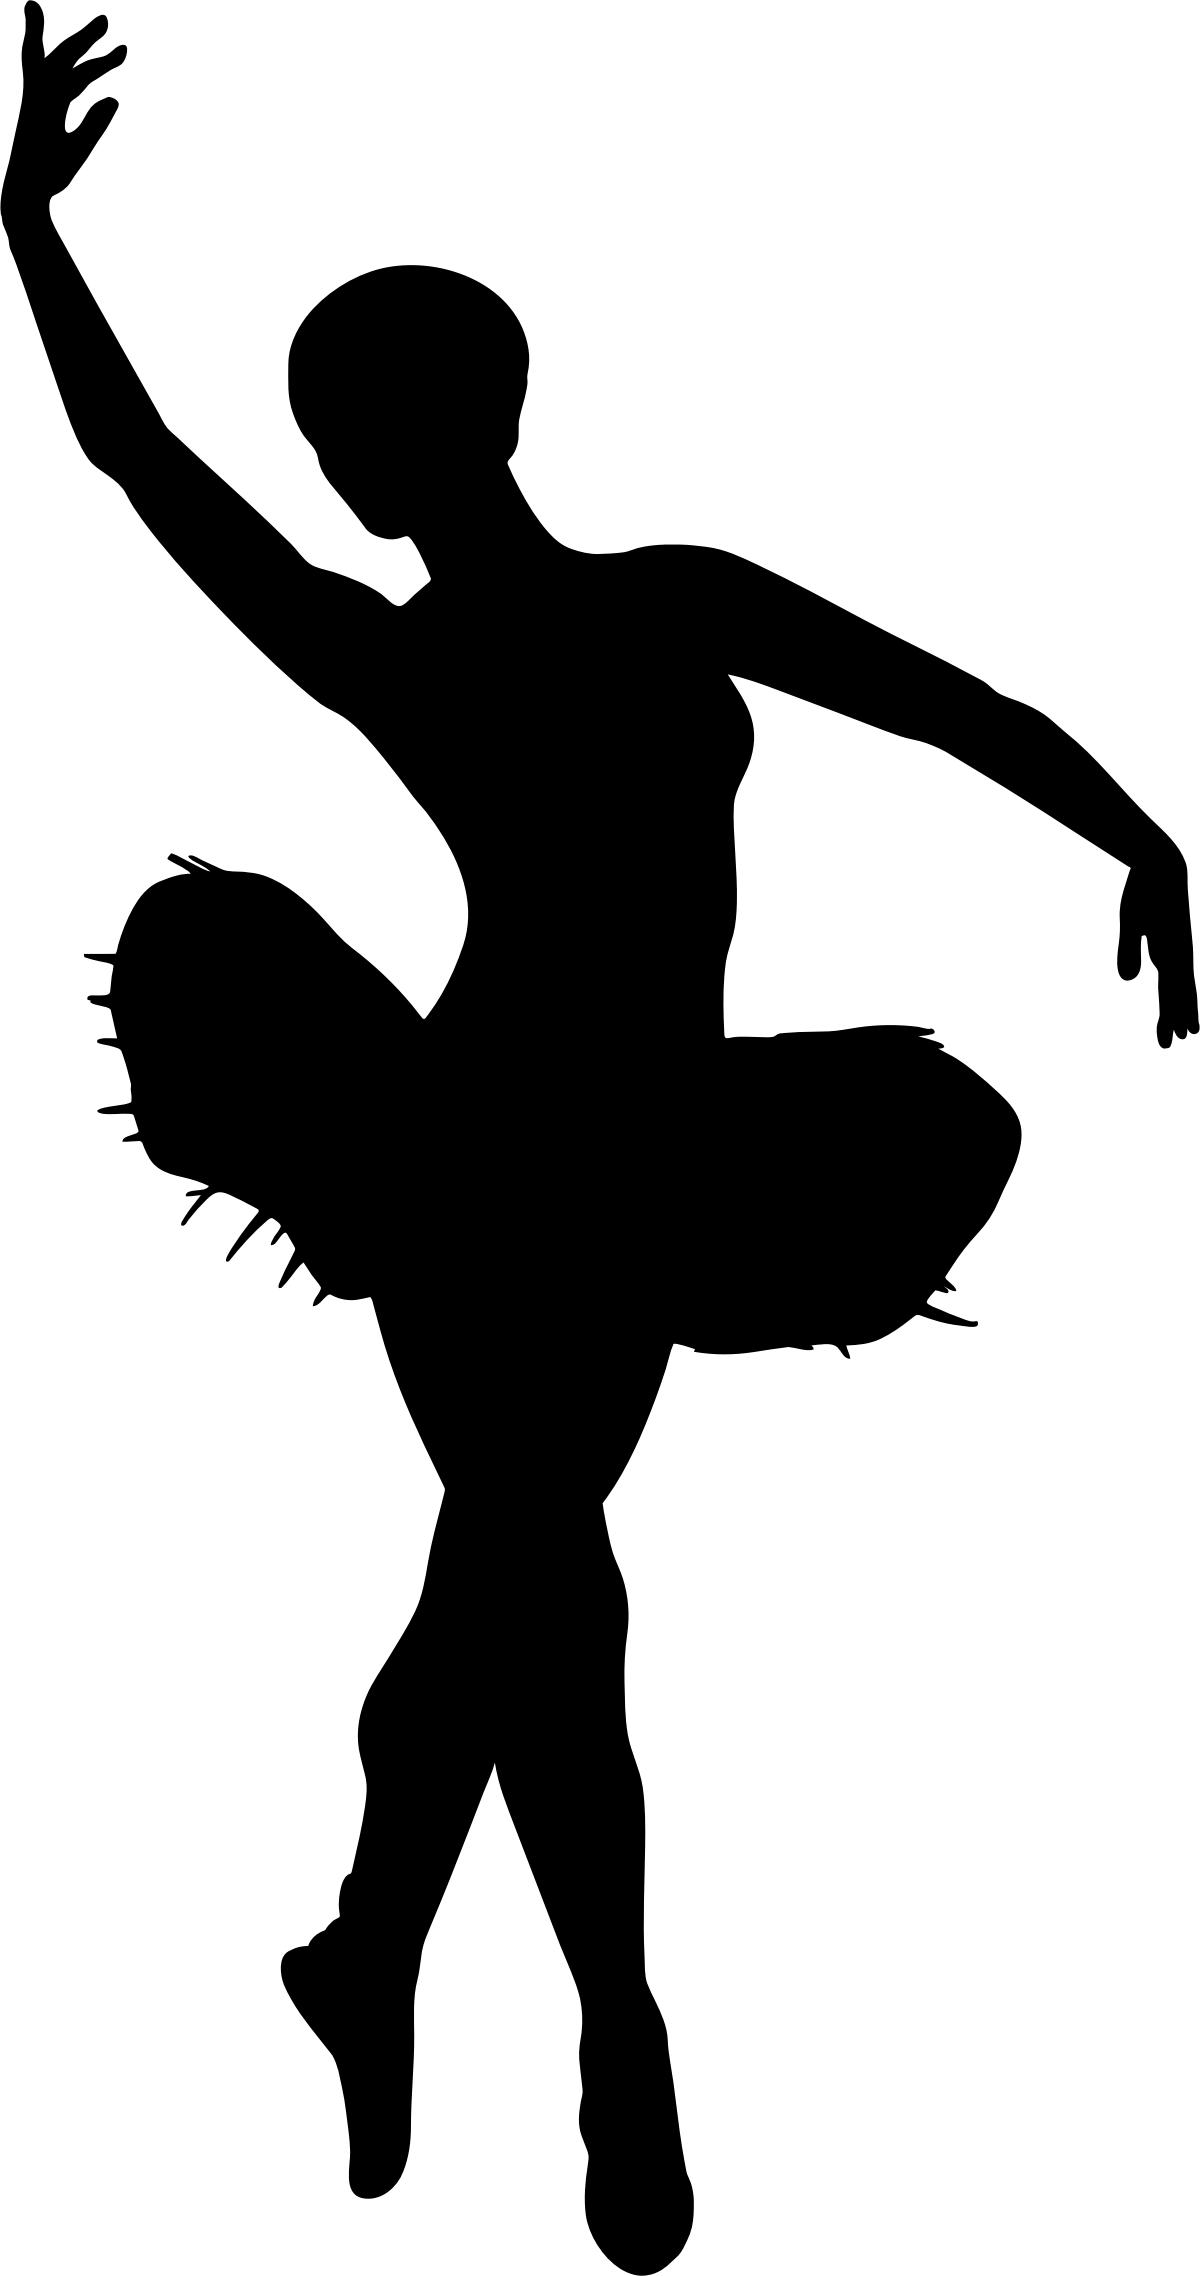 Regenschirme Transparent Free Ballet Silhouette Cliparts Download Free Clip Art